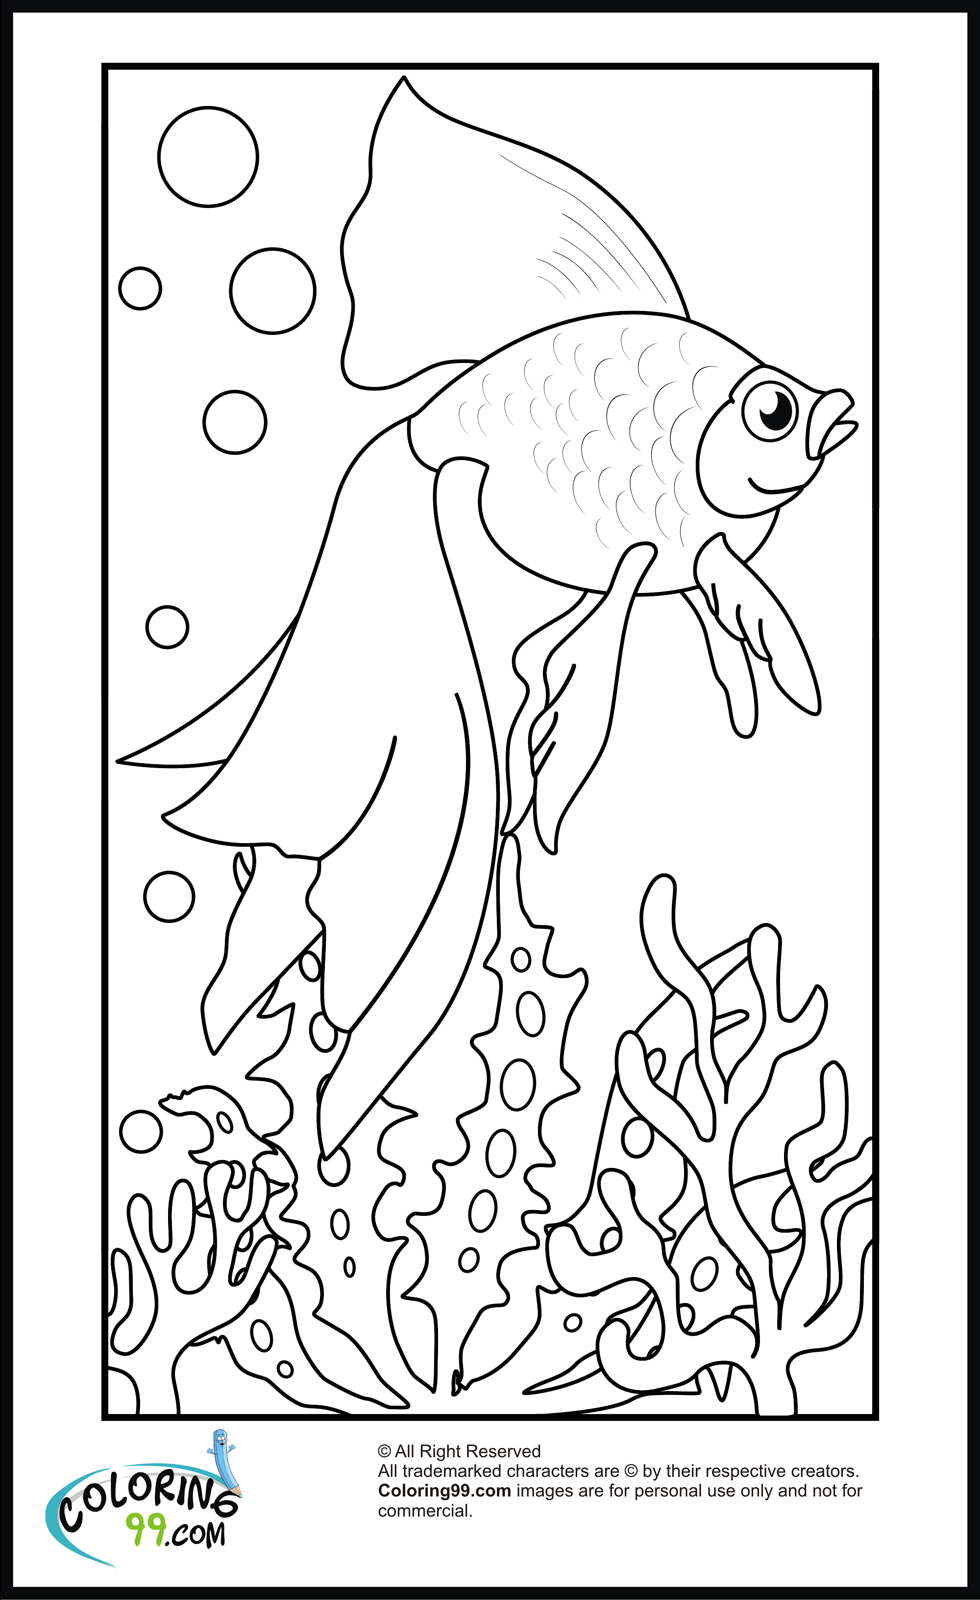 coloring pages onlinw - photo#35